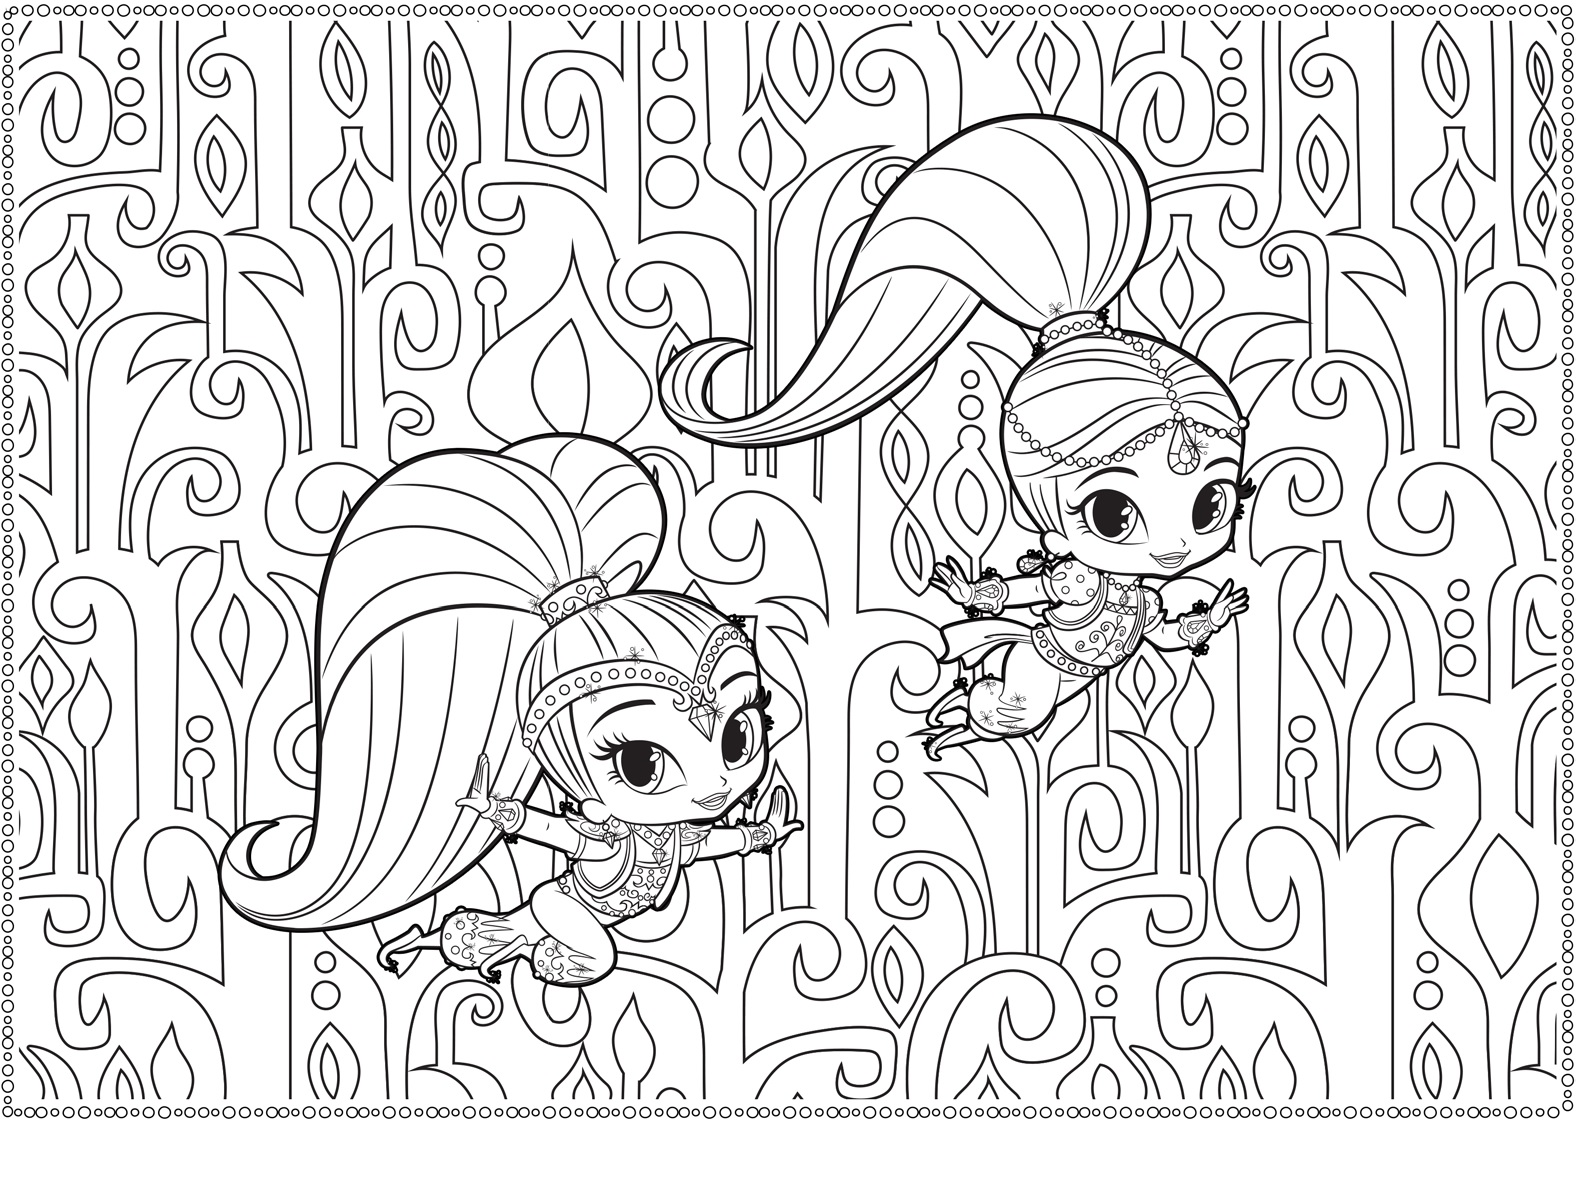 Shimmer-and-Shine-Nick-JR-coloring-sheet-for-adults